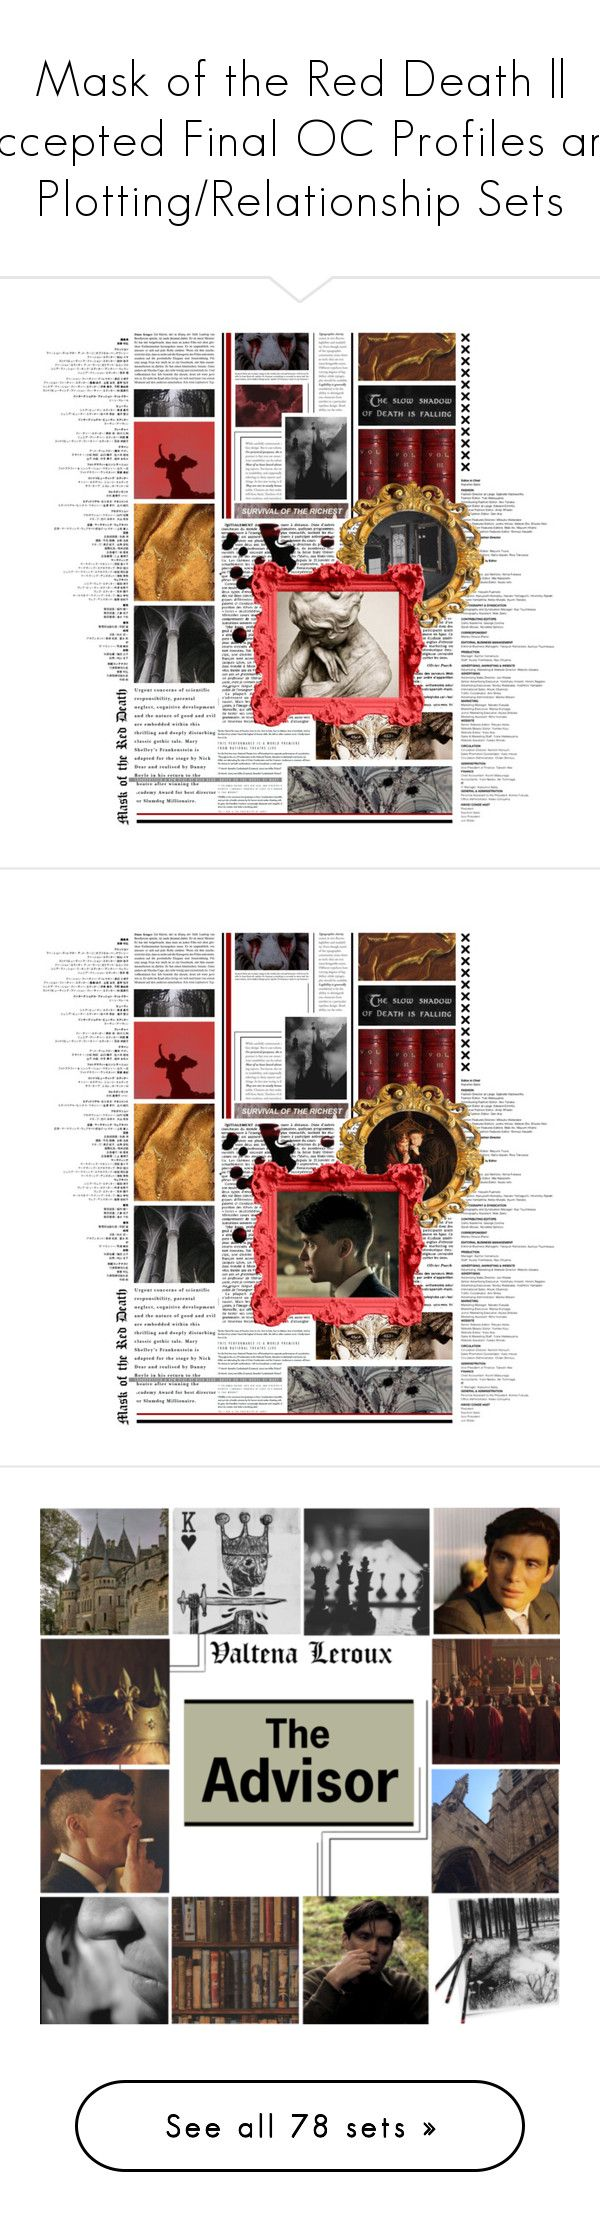 17 best ideas about plot of macbeth macbeth plot mask of the red death accepted final oc profiles and plotting relationship sets by 10084 liked on polyvore featuring art macbeth barker men s fashion